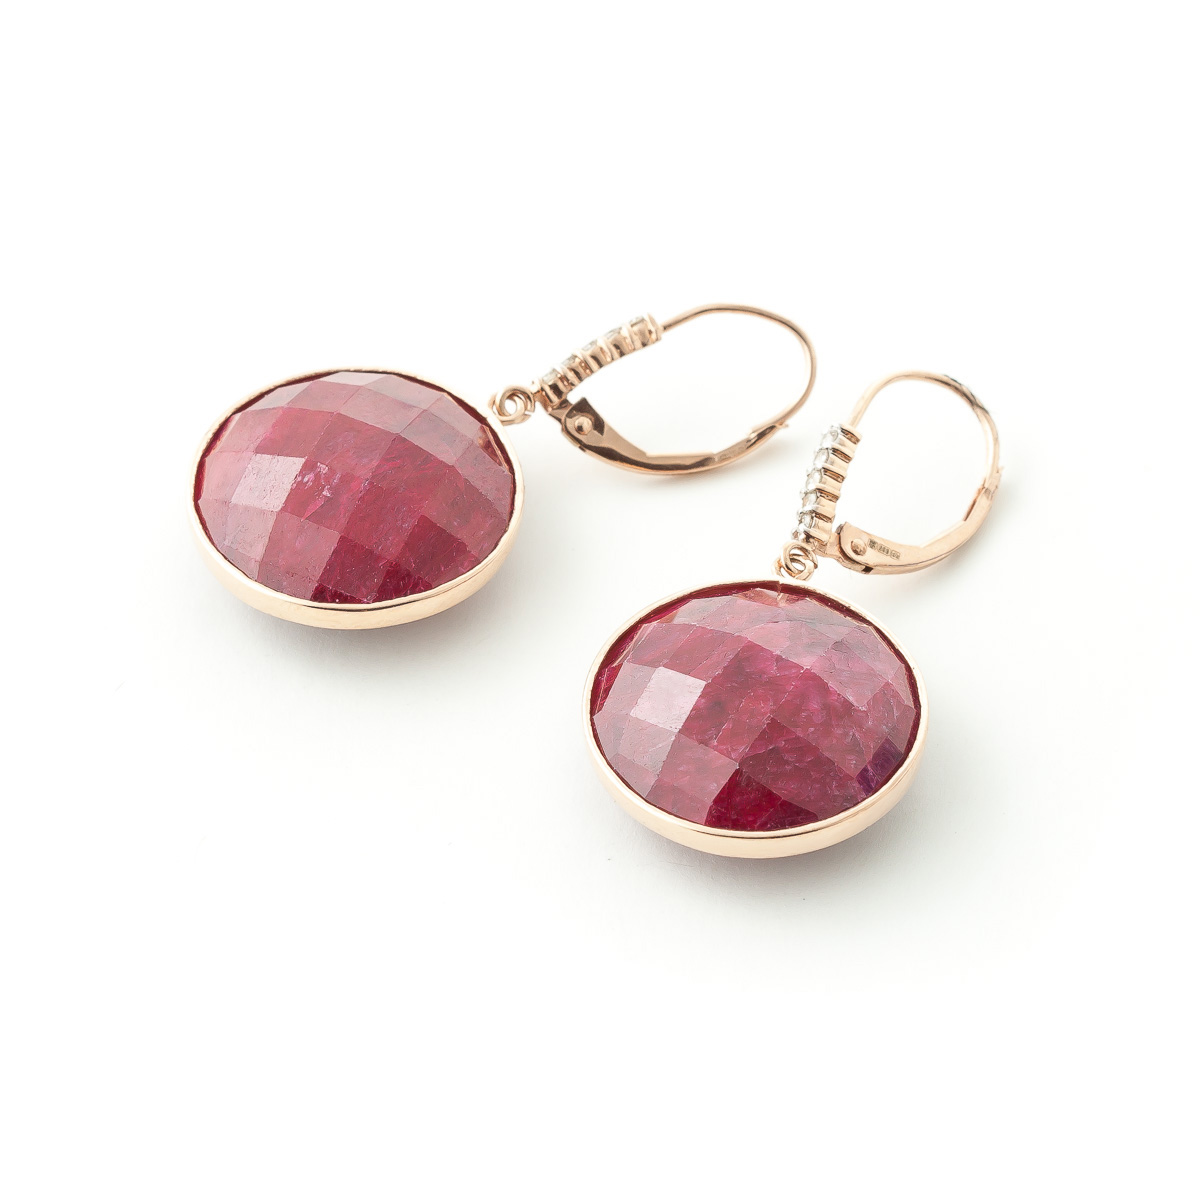 Ruby and Diamond Drop Earrings 46.0ctw in 14K Rose Gold